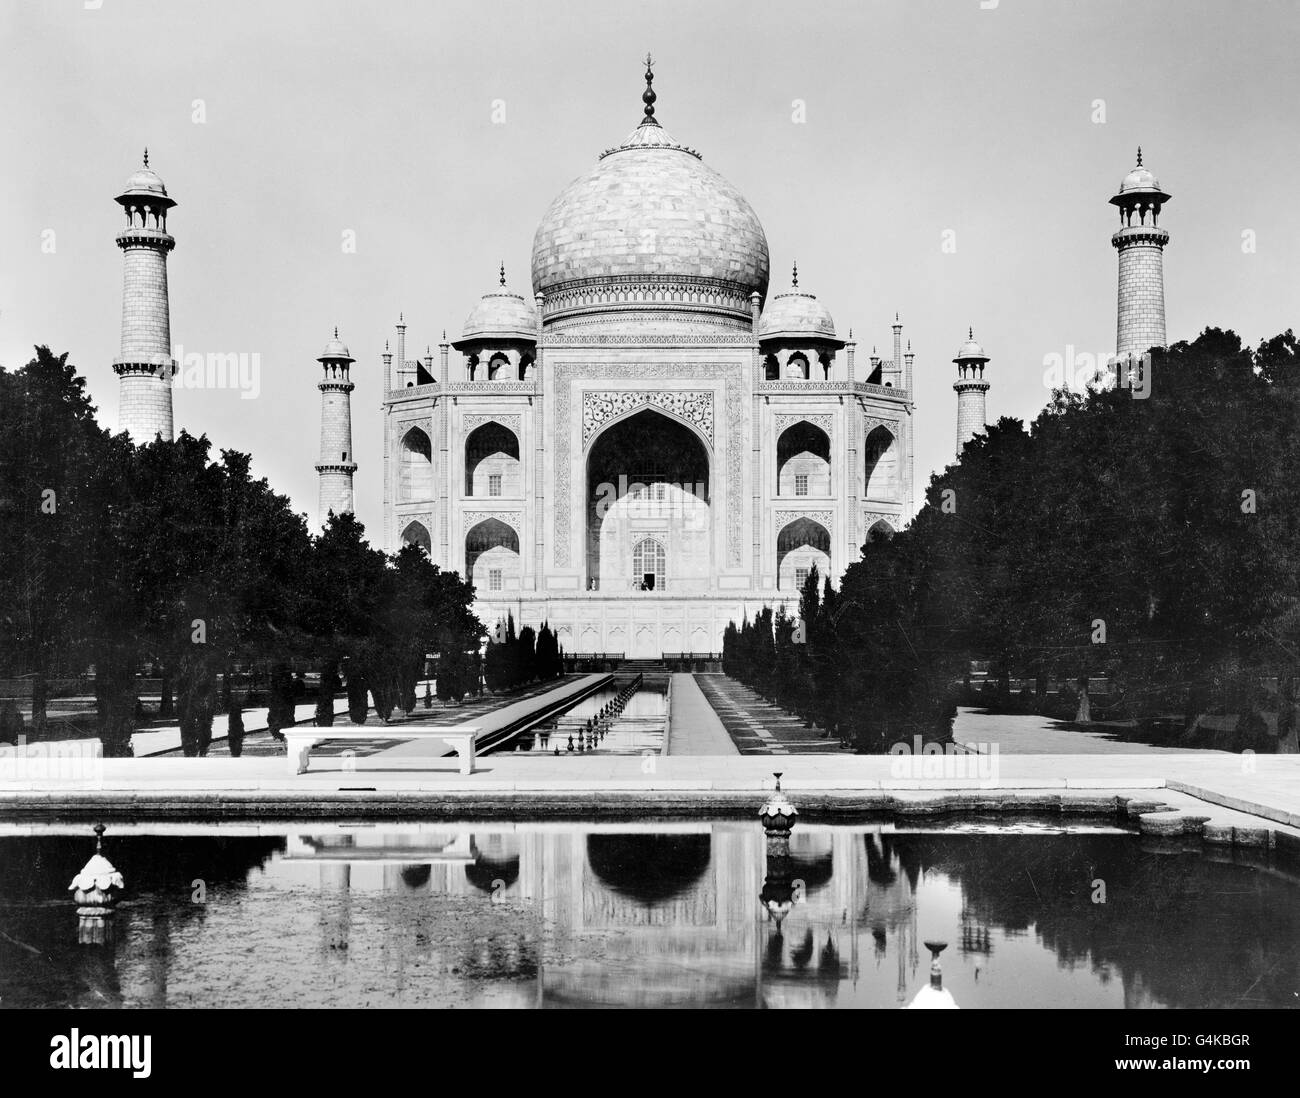 The Taj Mahal in Agra, Uttar Pradesh, India c.1920. Photo, Frank G Carpenter. - Stock Image